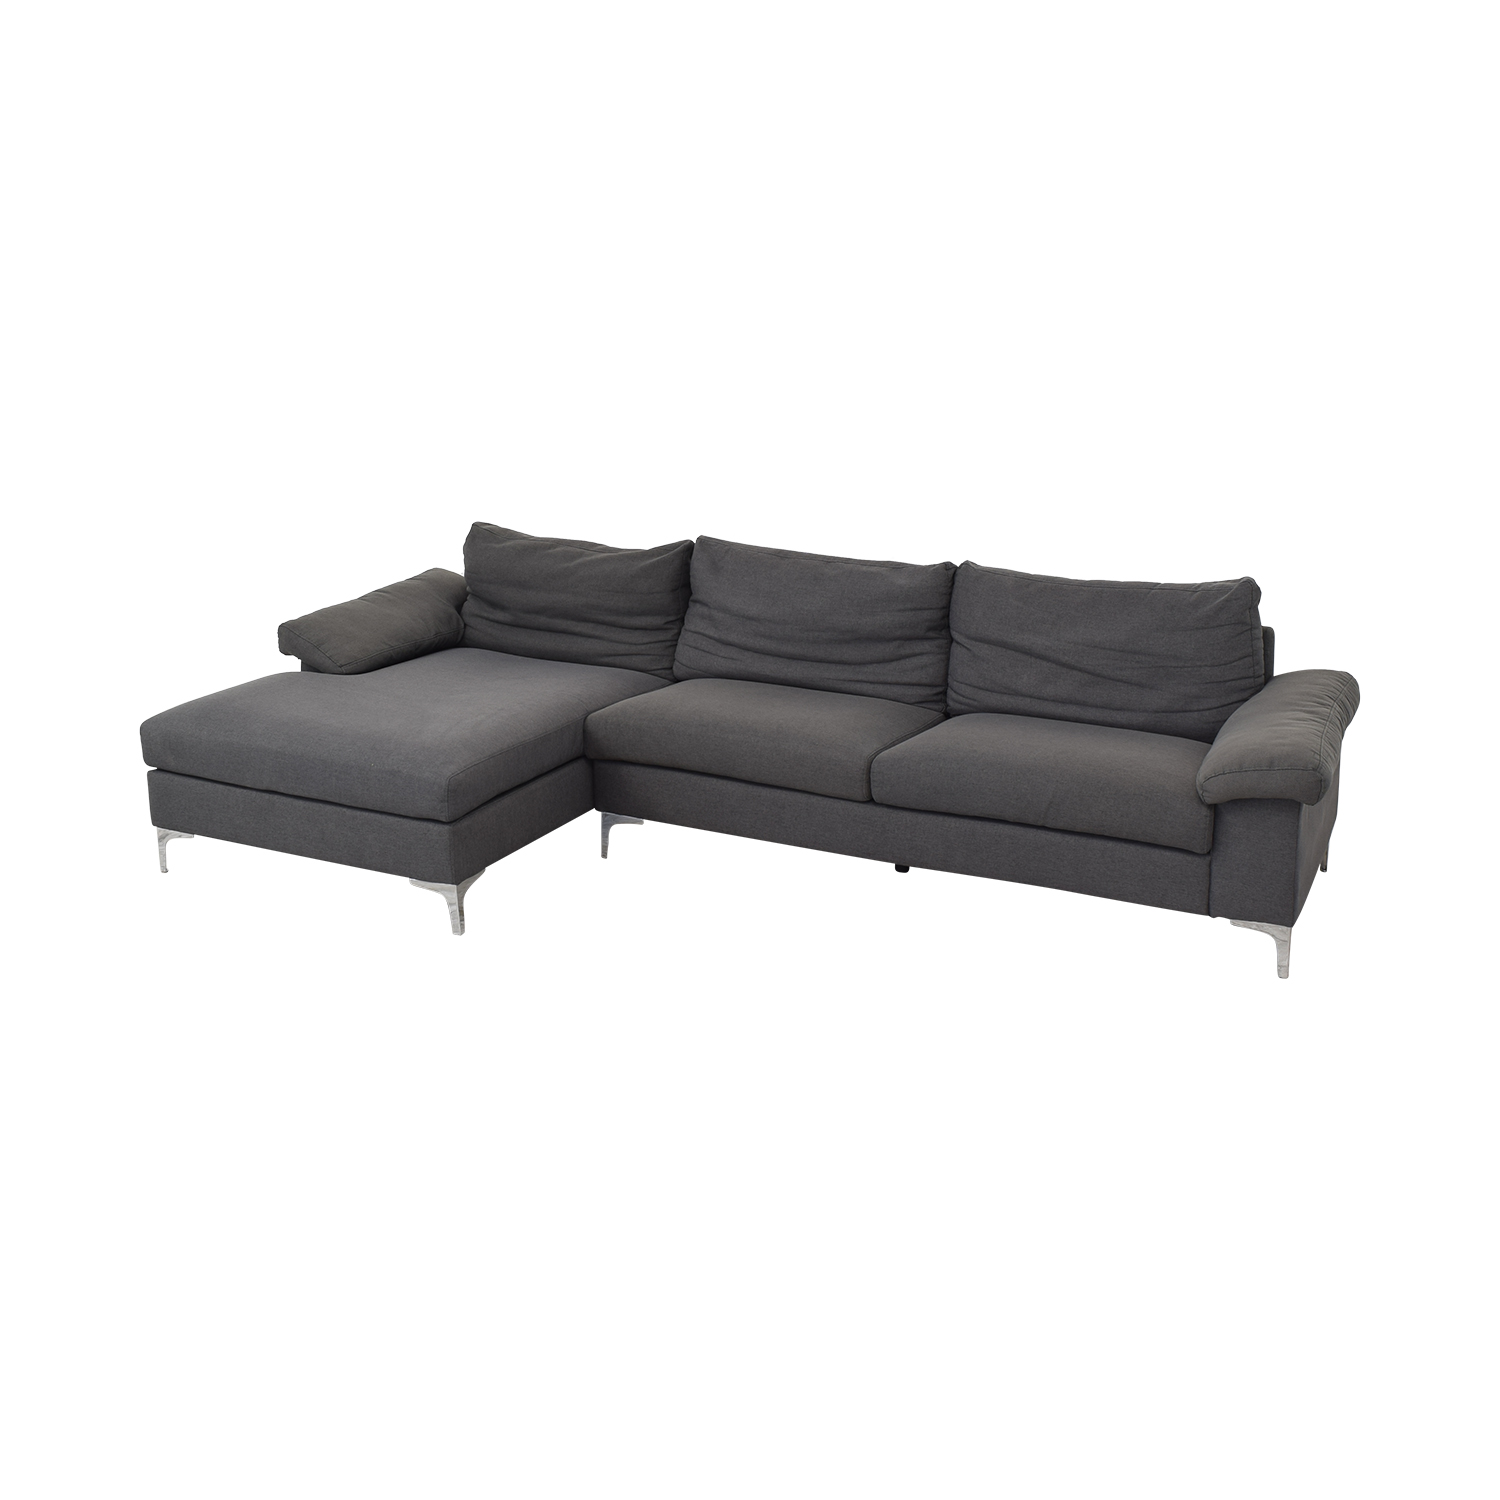 Ethan Allen Sectional Sofa with Chaise / Sofas